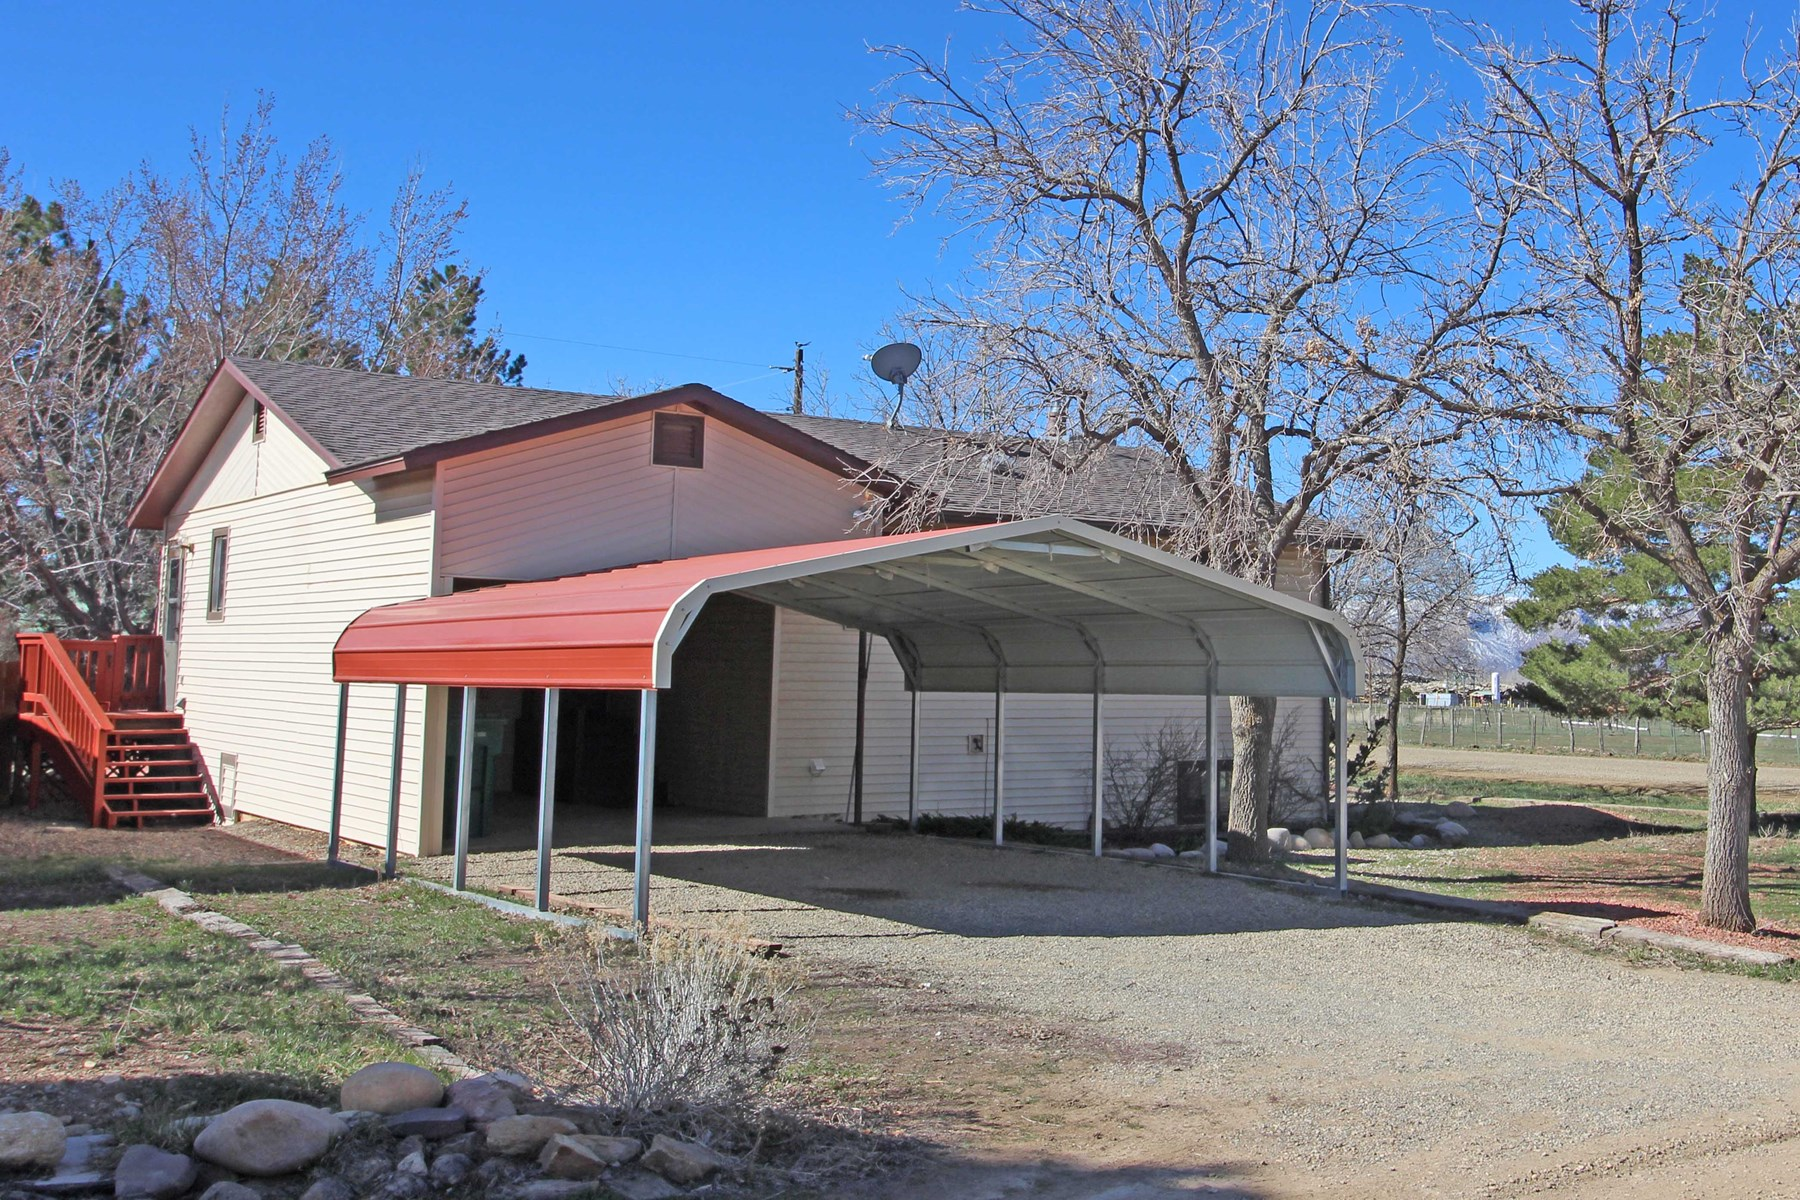 In town Home for Sale, Mancos Colorado